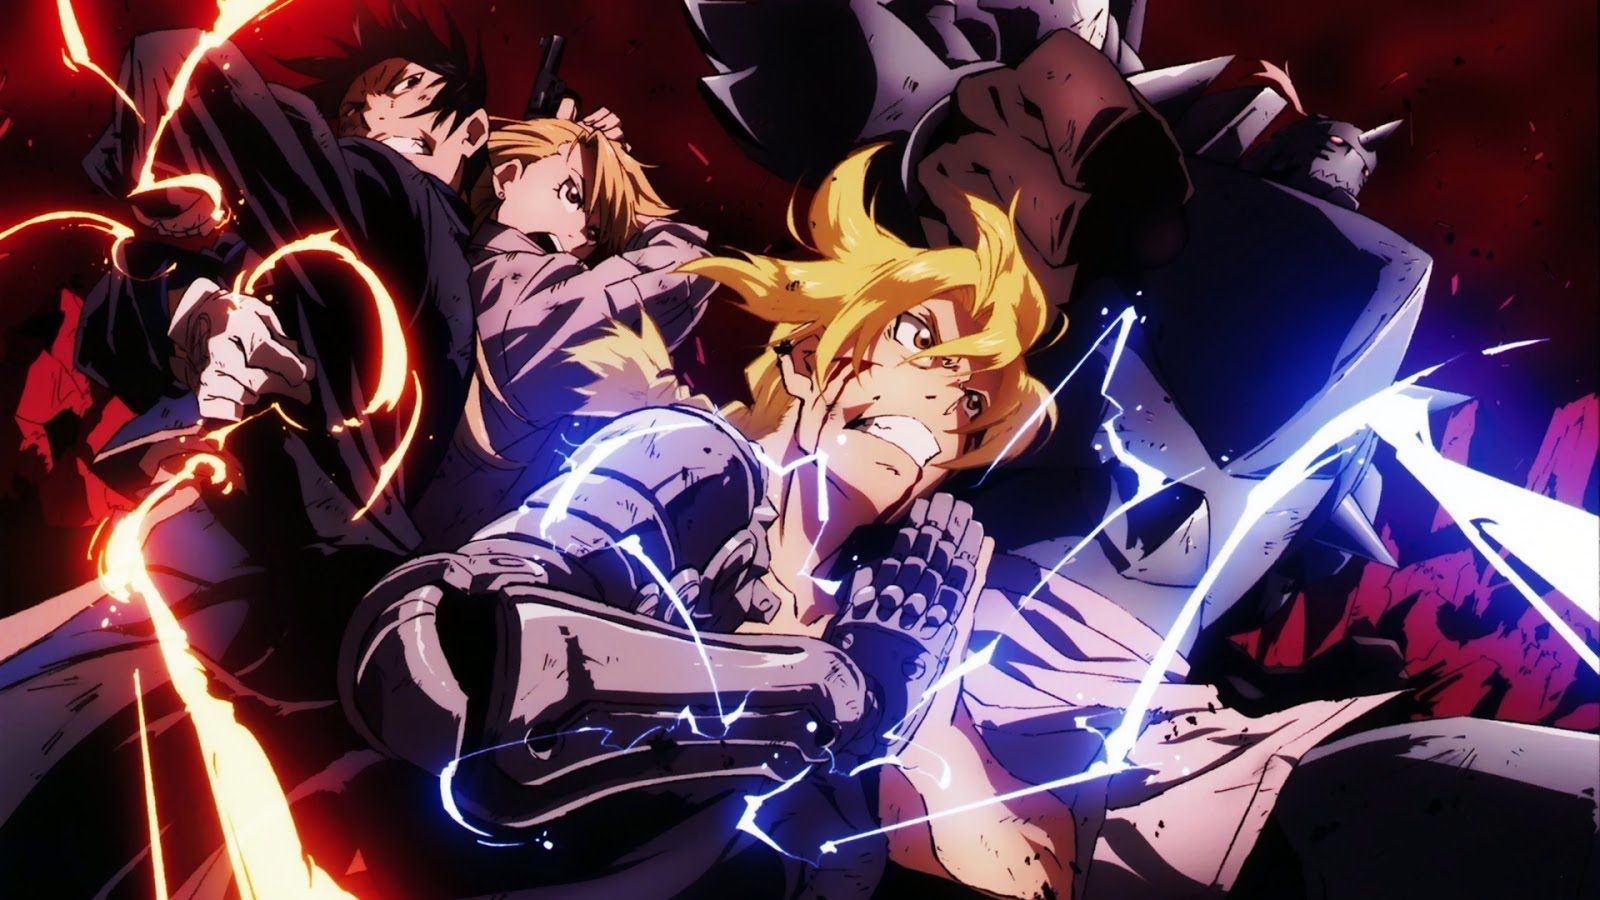 Epic Anime Fighting Pictures Fullmetal Alchemist Fullmetal Alchemist Brotherhood Anime Hd